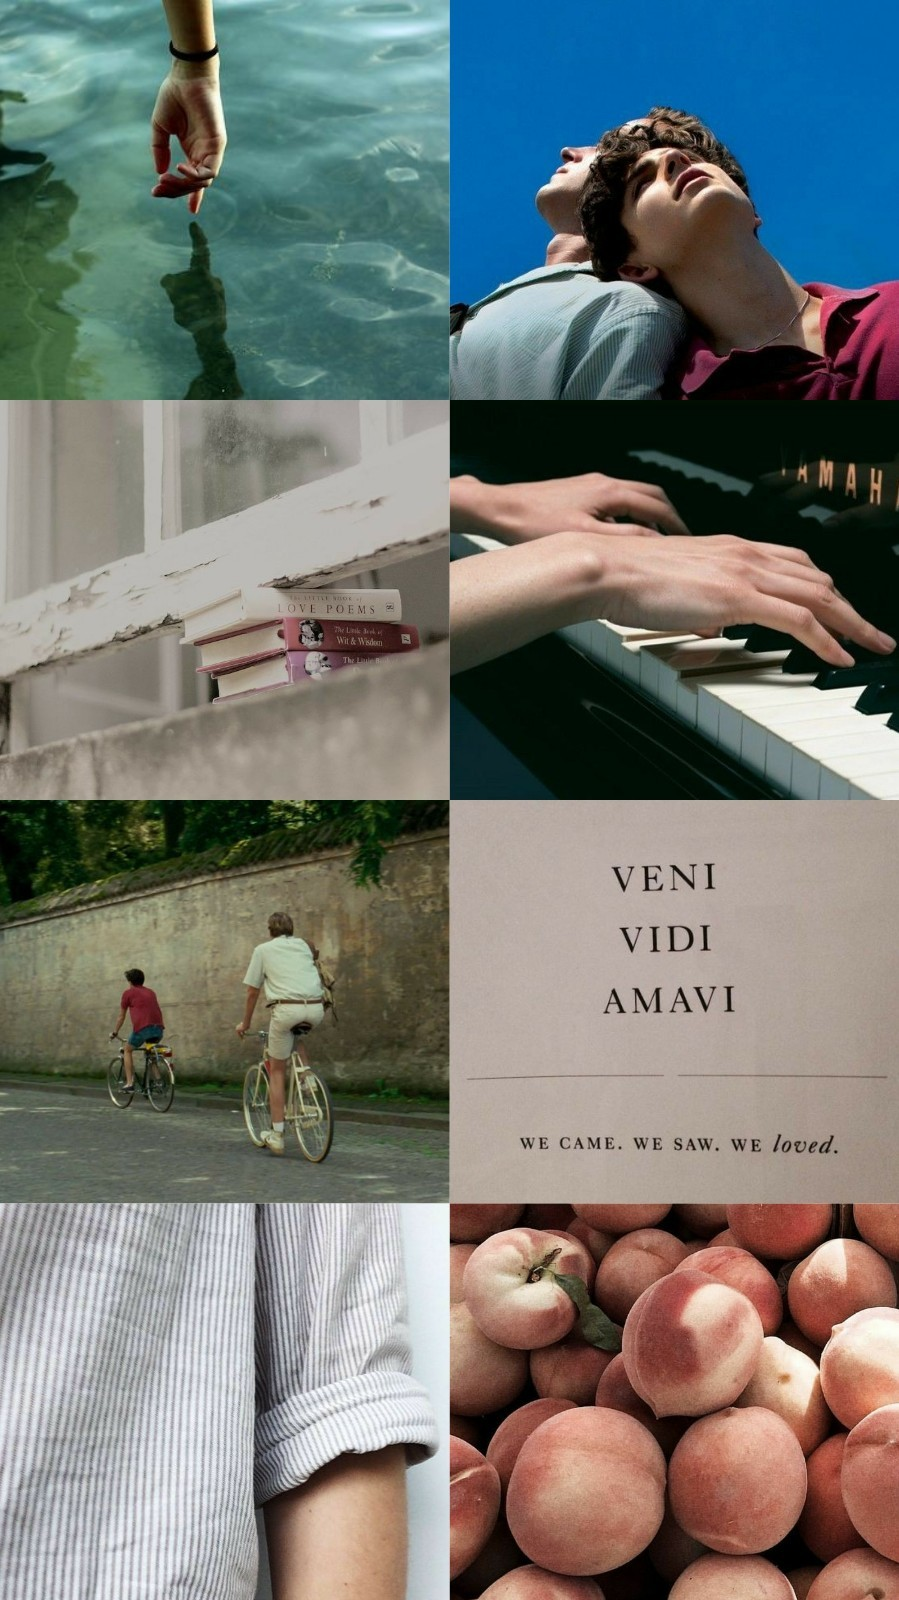 Call Me By Your Name Aesthetic Anonymous Asked Call Me By Your Name Aesthetic 899x1600 Download Hd Wallpaper Wallpapertip